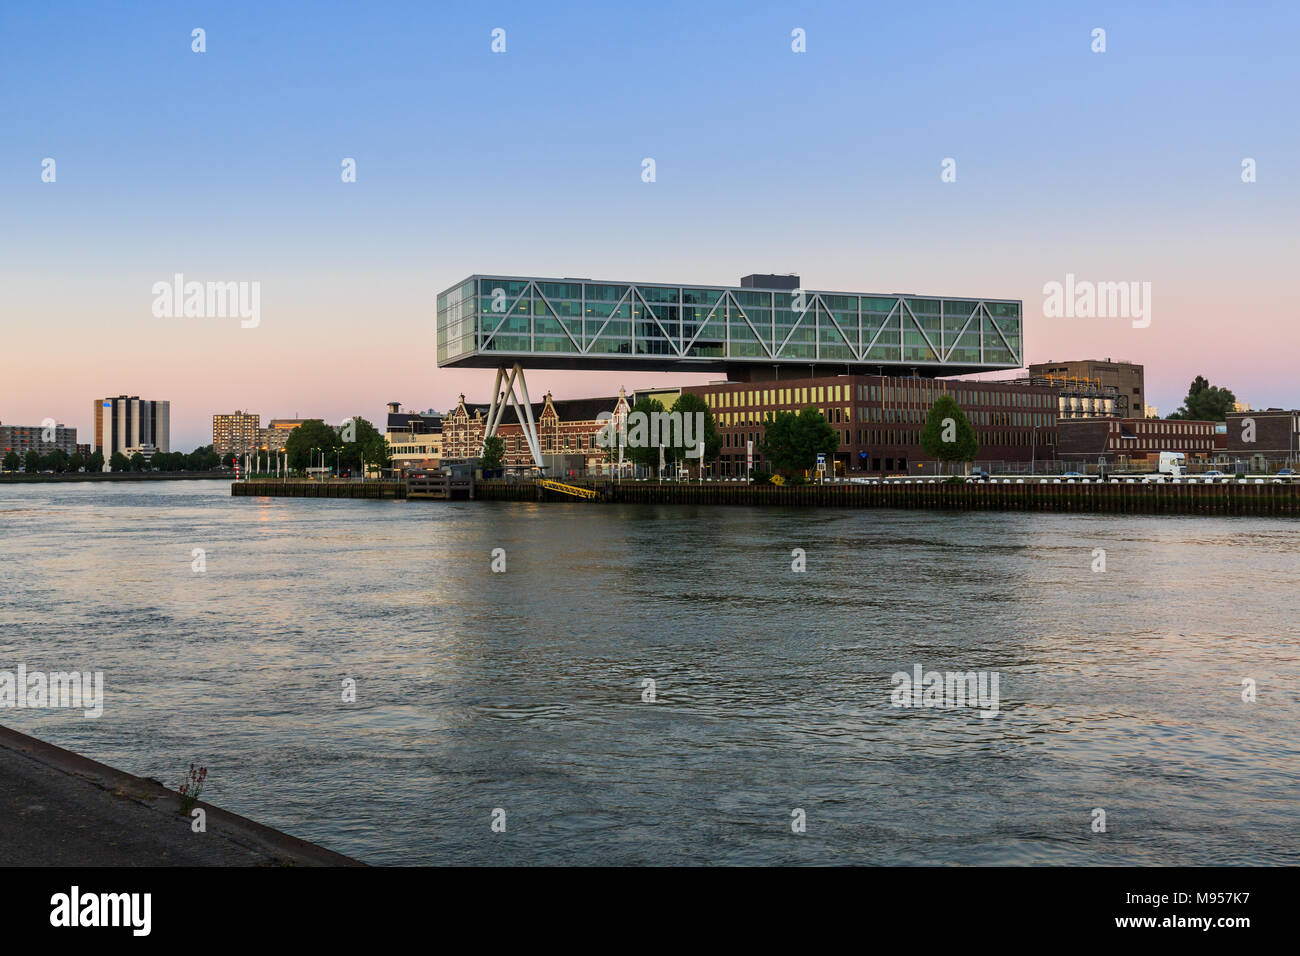 ROTTERDAM, NETHERLANDS - MAY 25, 2017: Exterior view of the promenade from the Prins Hendrikkade Street at evening with a view to the Maas River on Ma - Stock Image